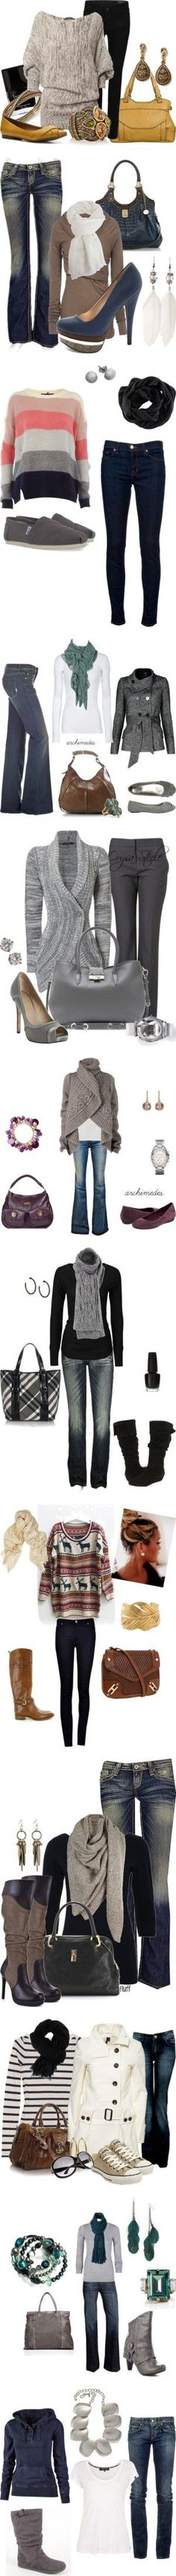 All these outfits // Cute fall outfits // Inspiration